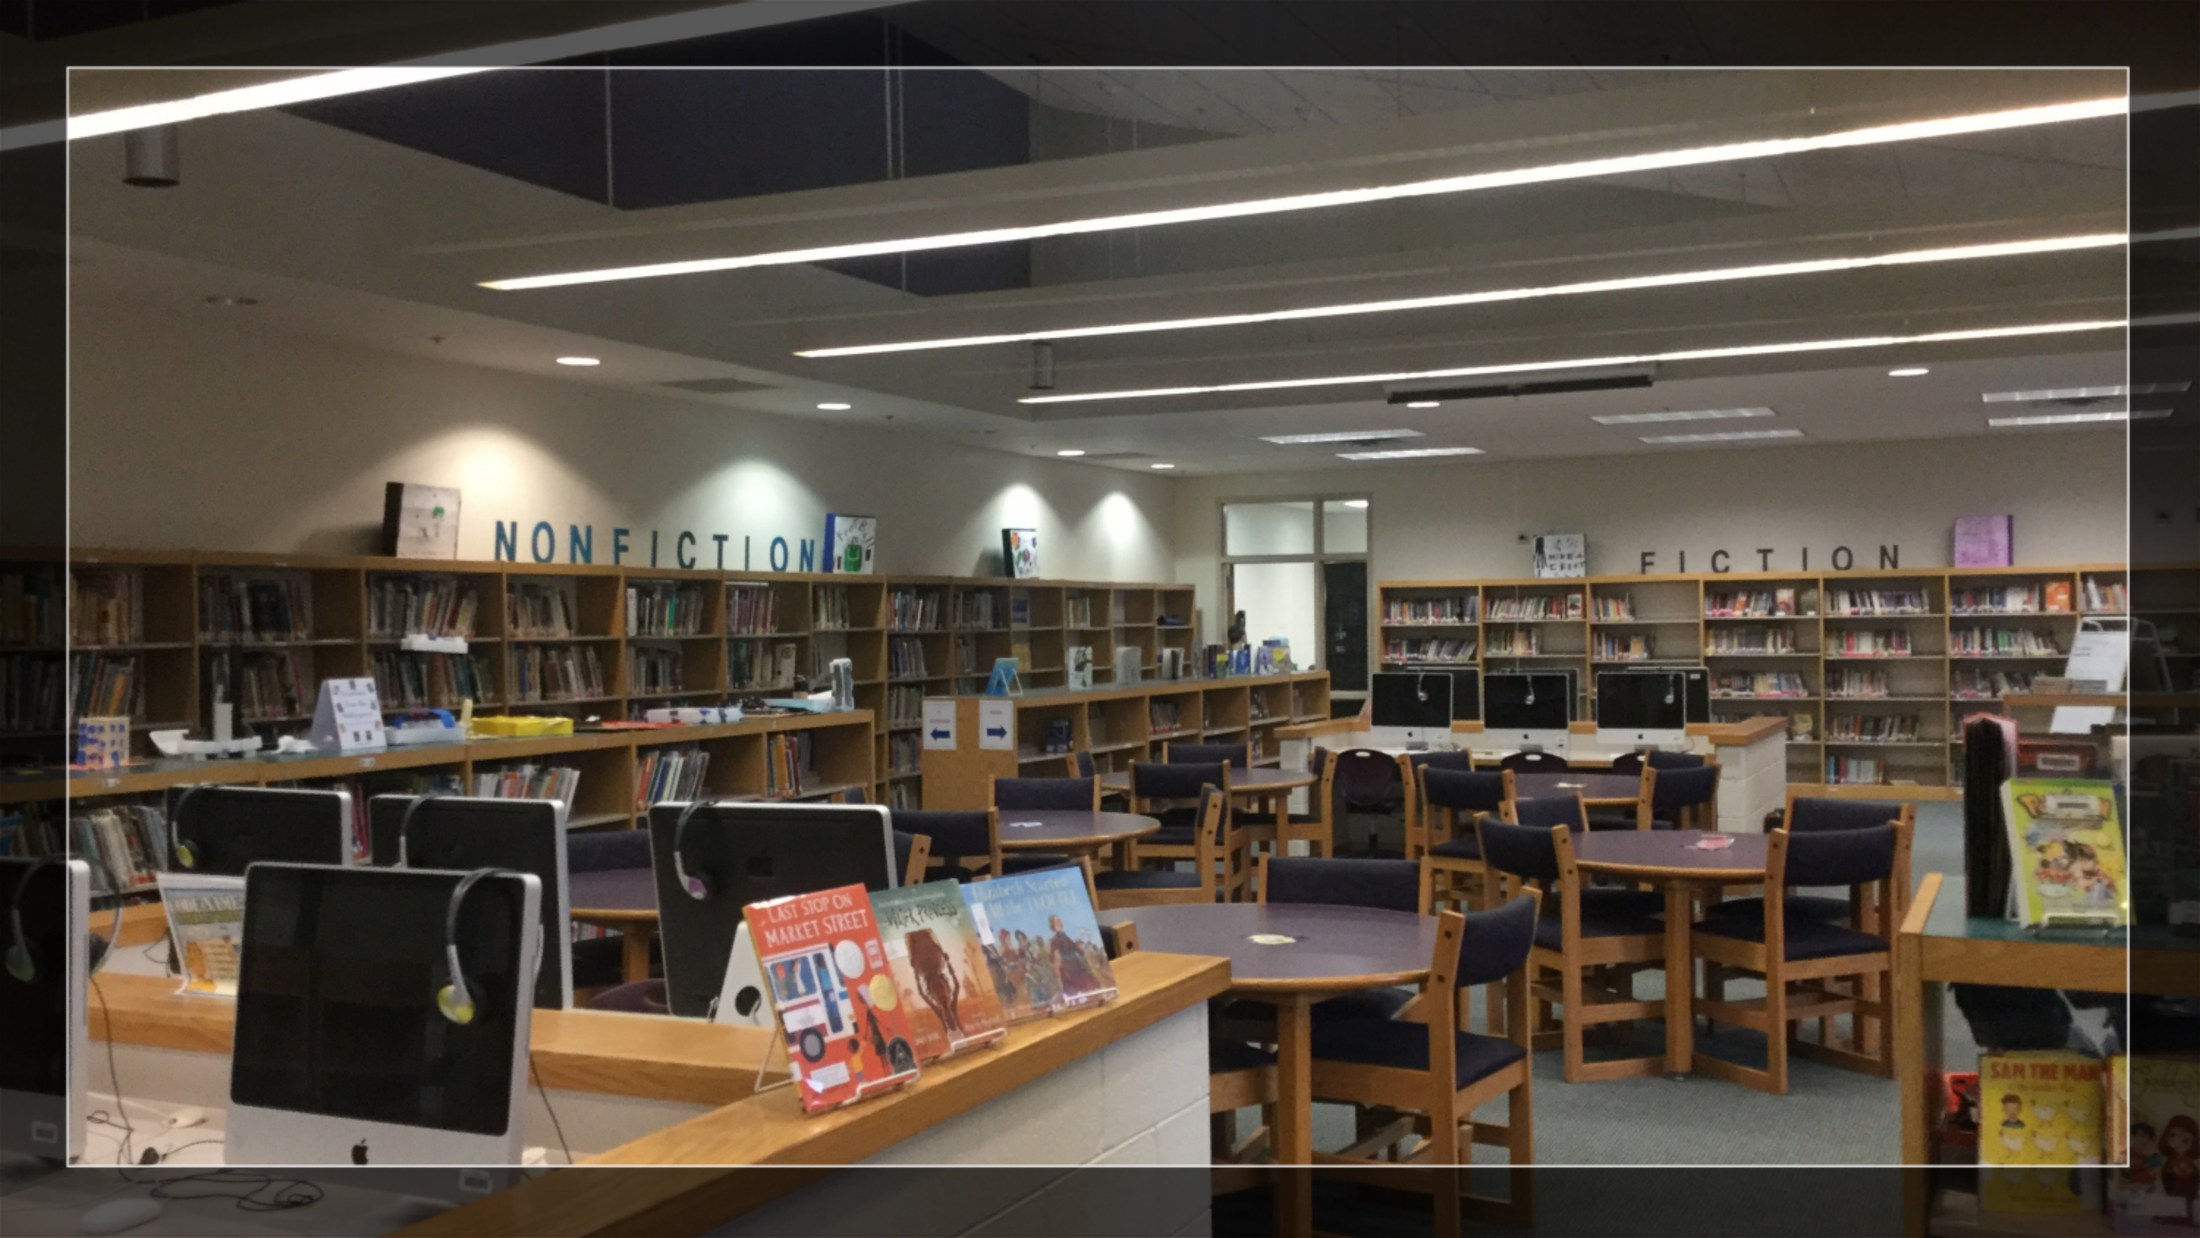 Image of the Media Center at WES.